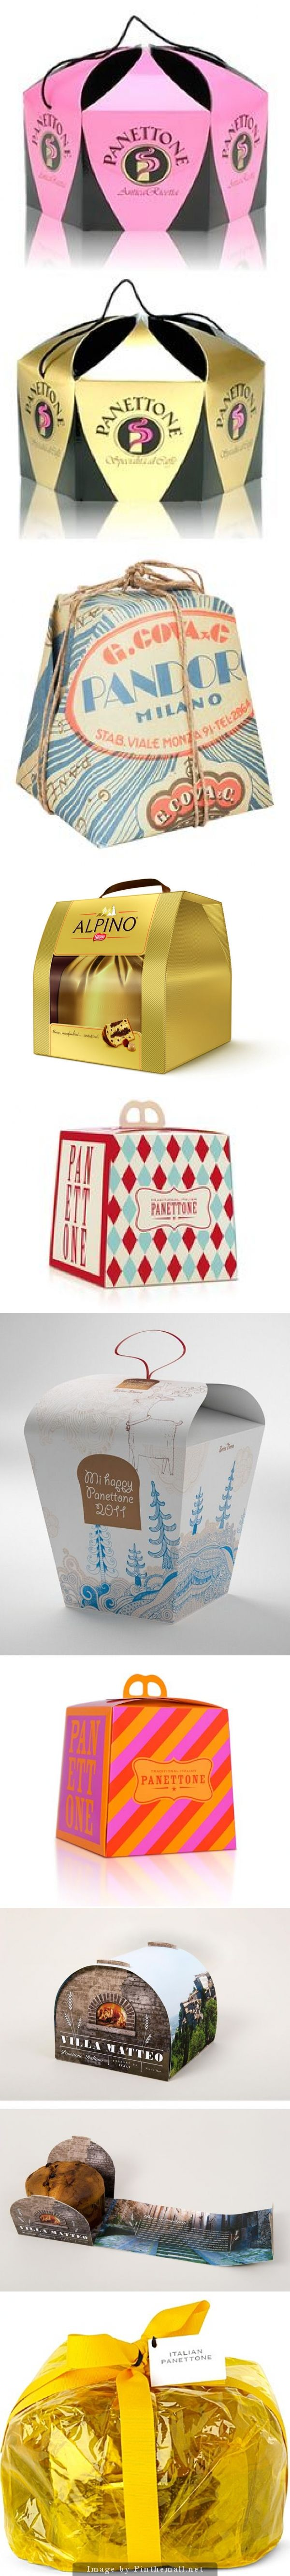 Get inspired by Panettone #packaging for the holidays curated by Packaging Diva PD created via http://pinterest.com/packagingdiva